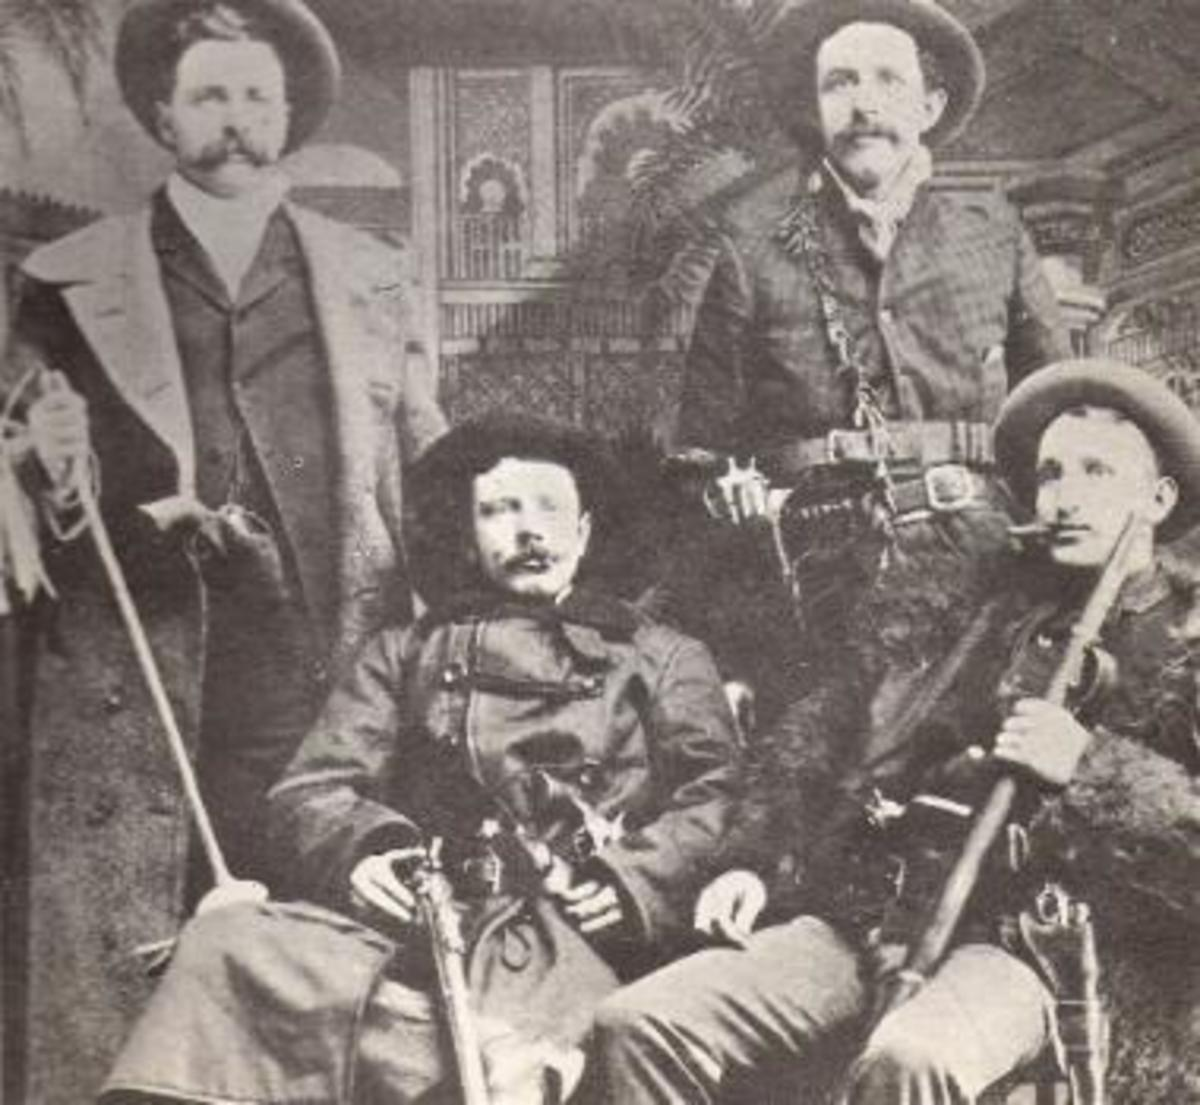 This is thought to be a photo of members of the Reno Gang; weapons are prominent.